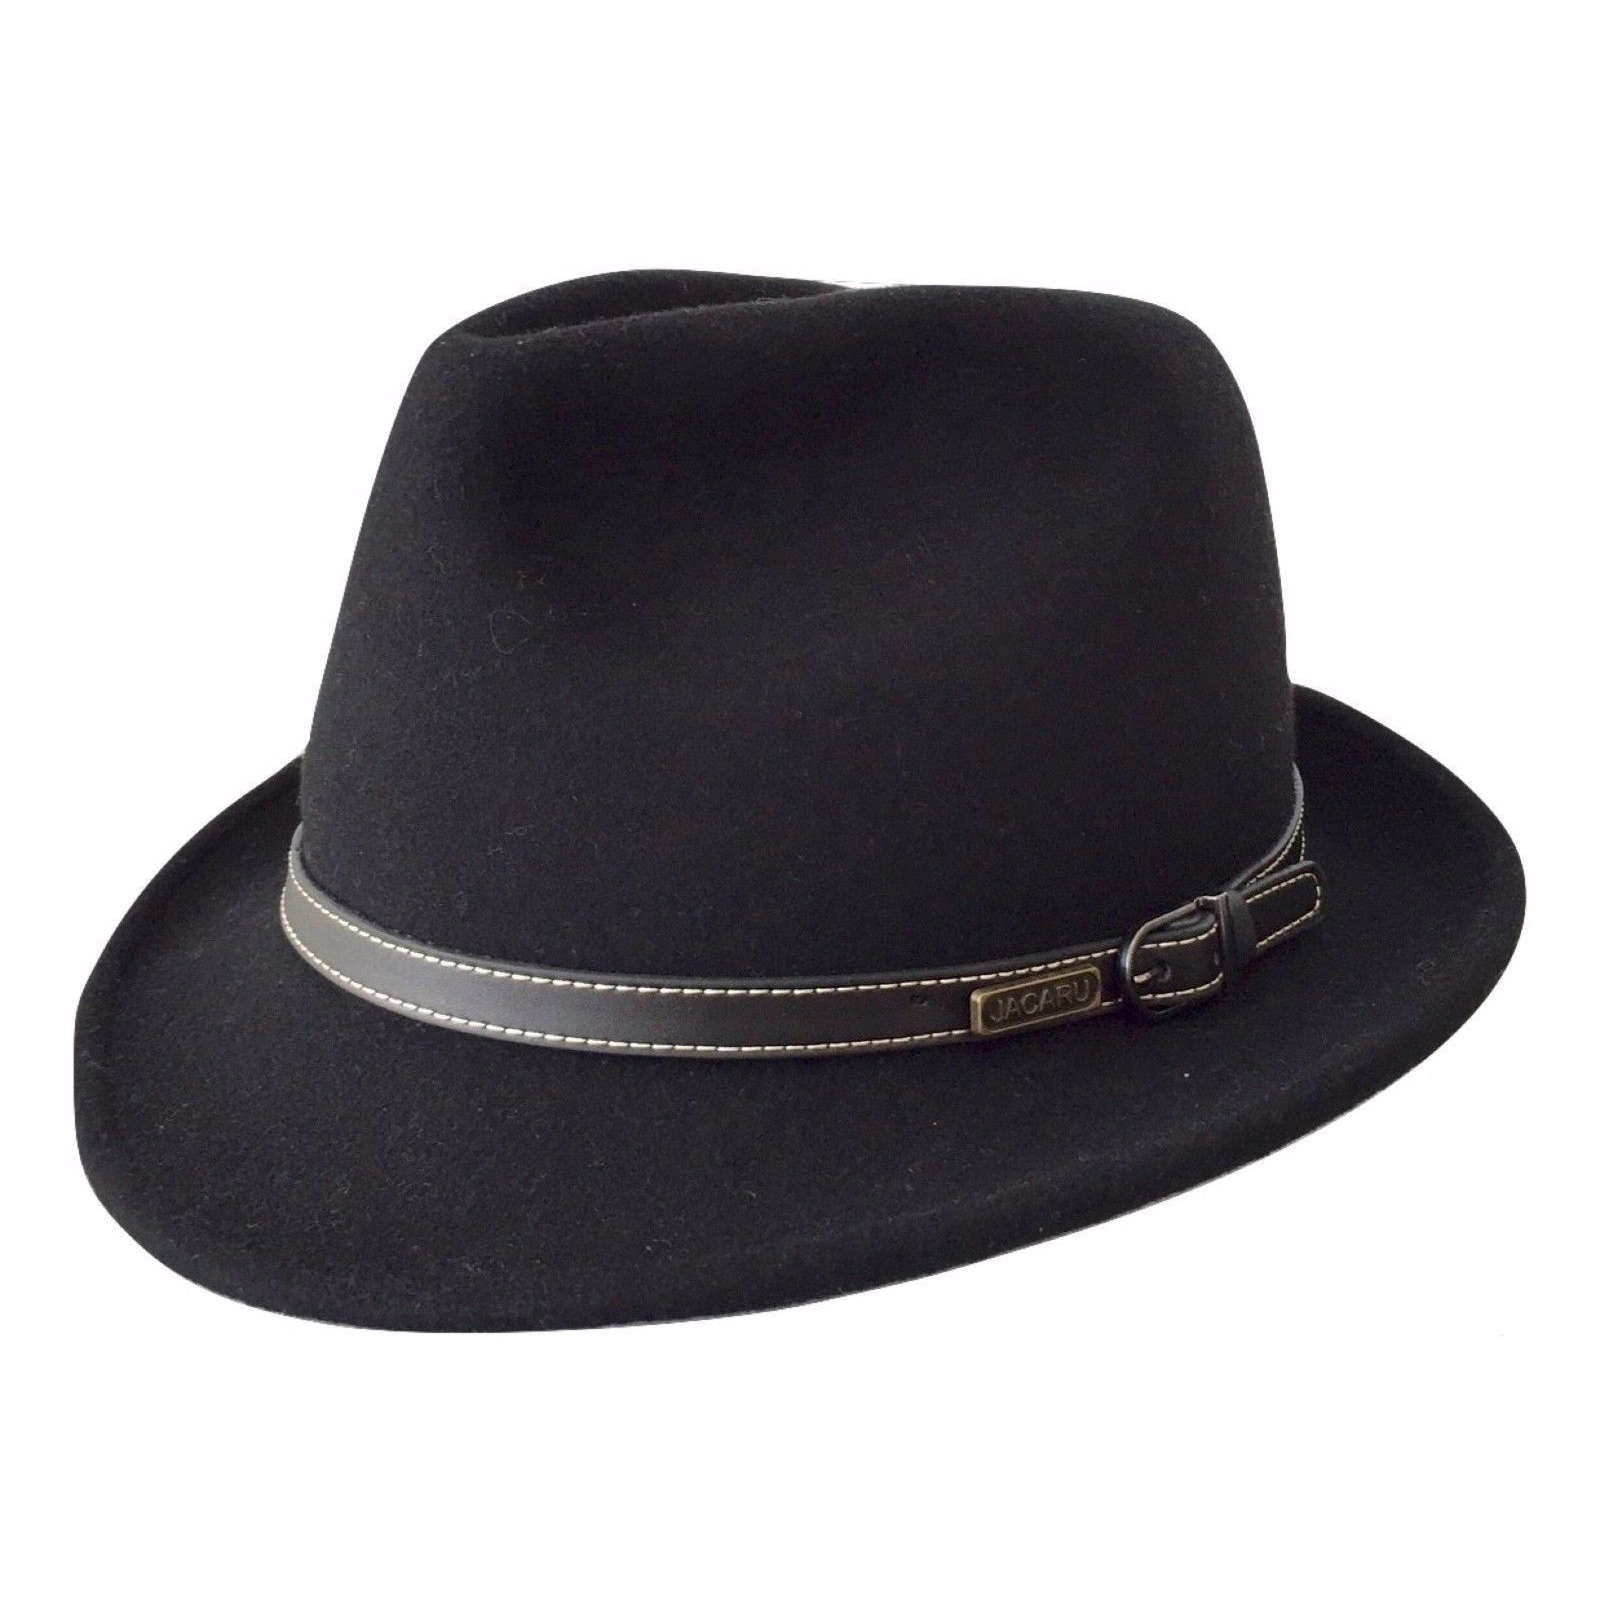 JACARU-Australian-Wool-Hat-Trilby-Fedora-100-WOOL-Crushable-Travel-Genuine-1848 thumbnail 5